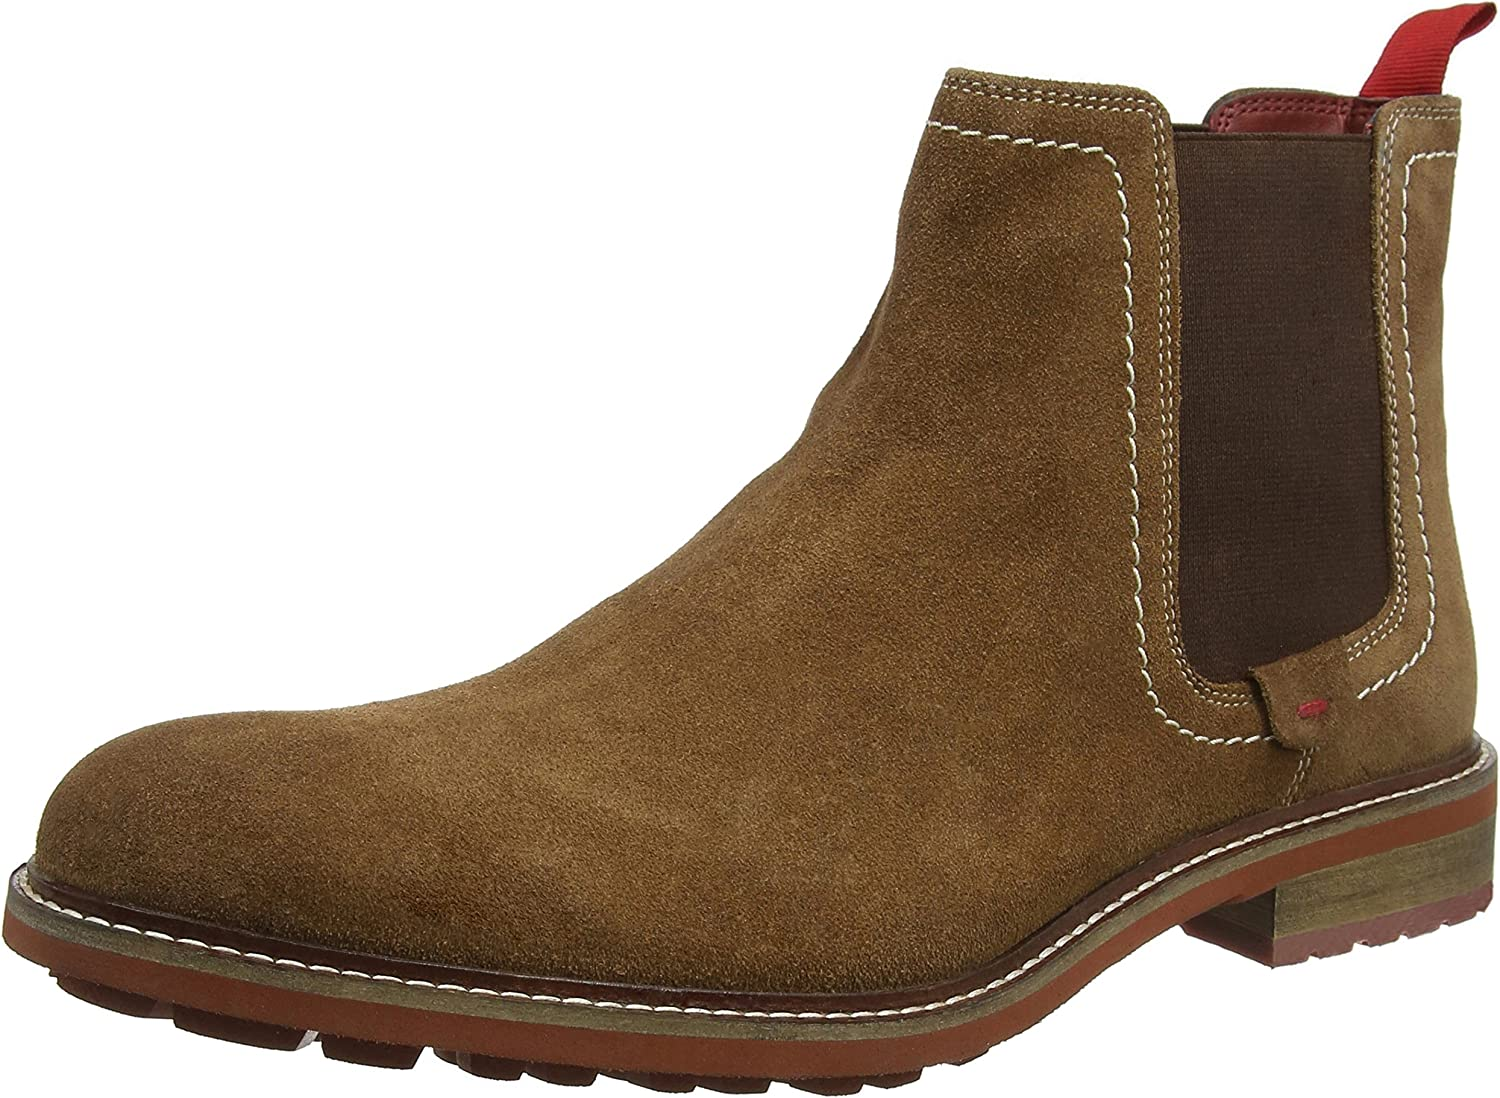 Joe Browns Mens Suede Chelsea Boots